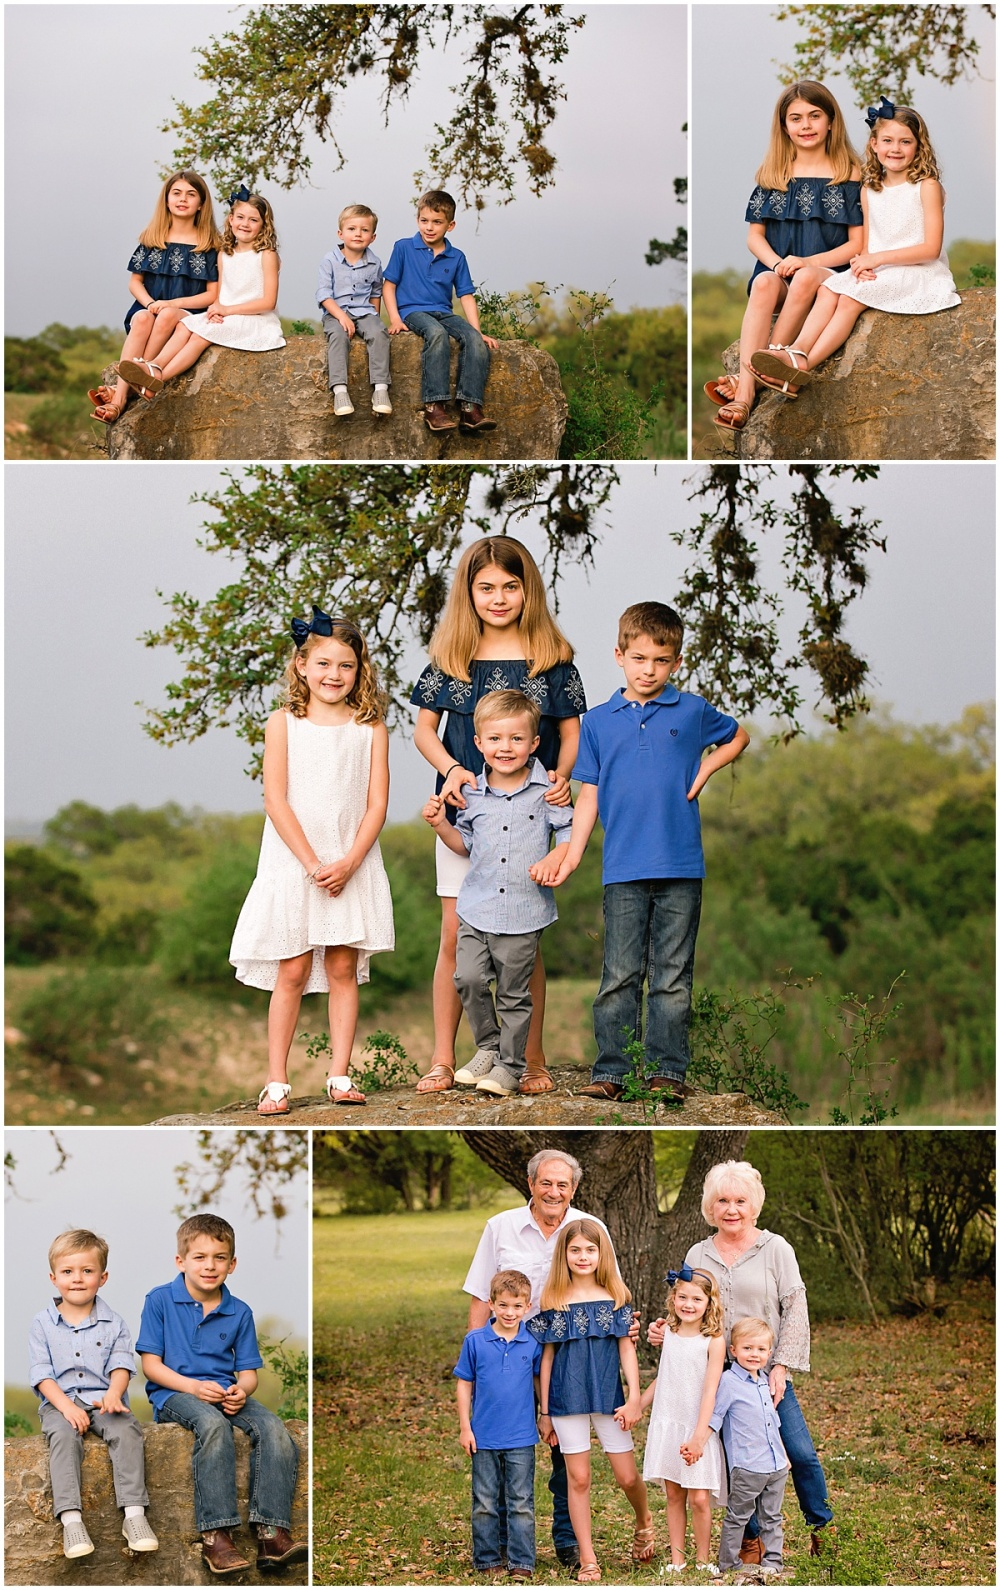 Family-Portraits-Classen-New-Braunels-Ranch-Carly-Barton-Photography_0043.jpg